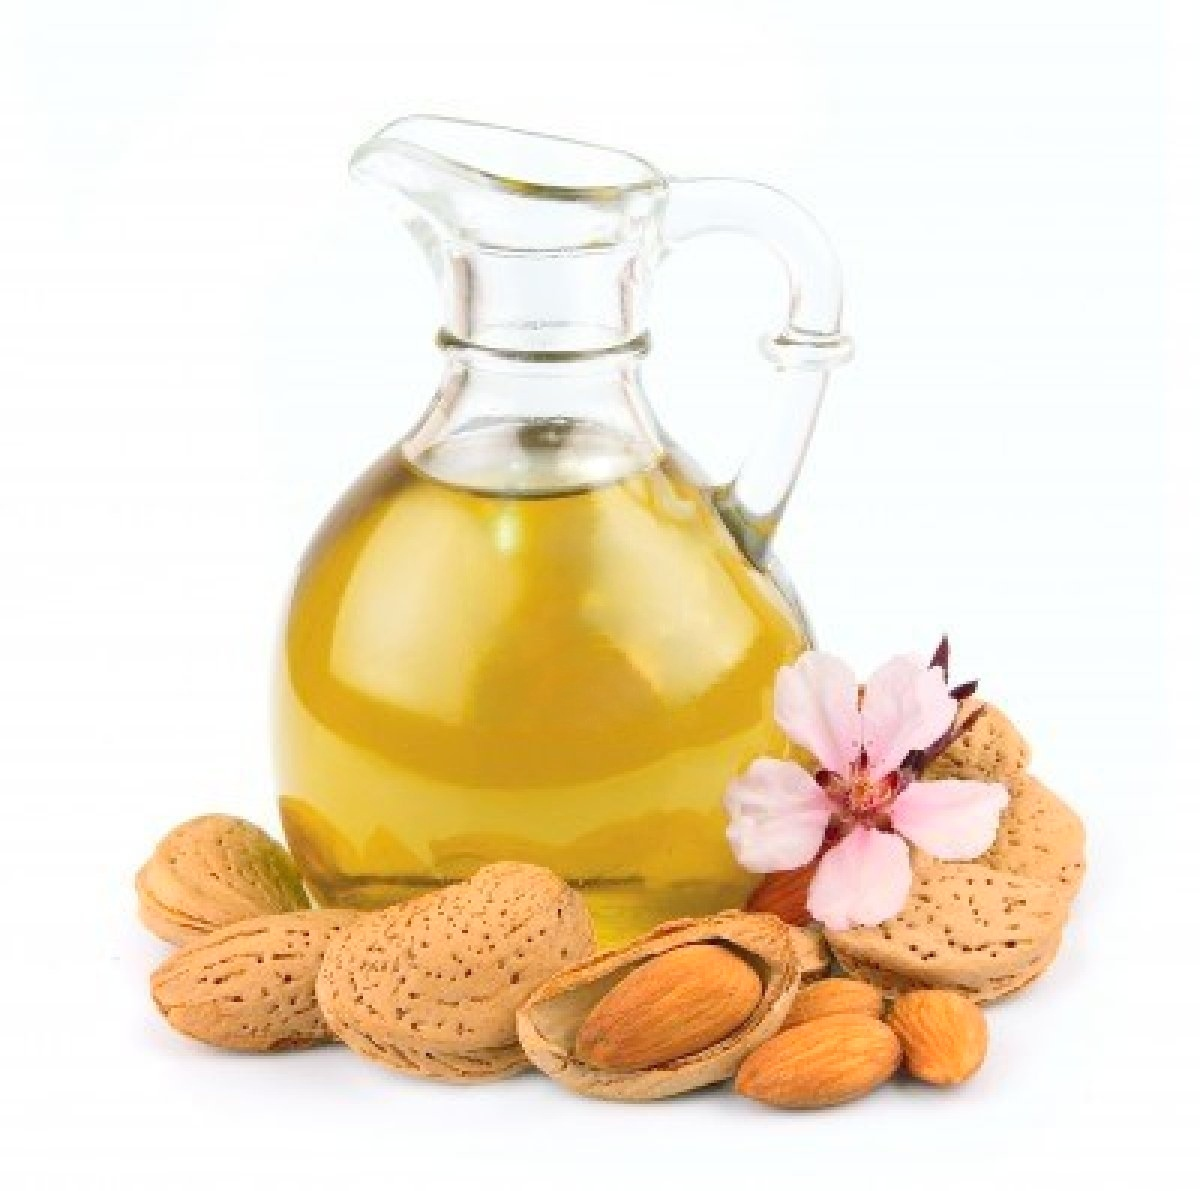 14918547-almond-oil-isolated-on-white-background